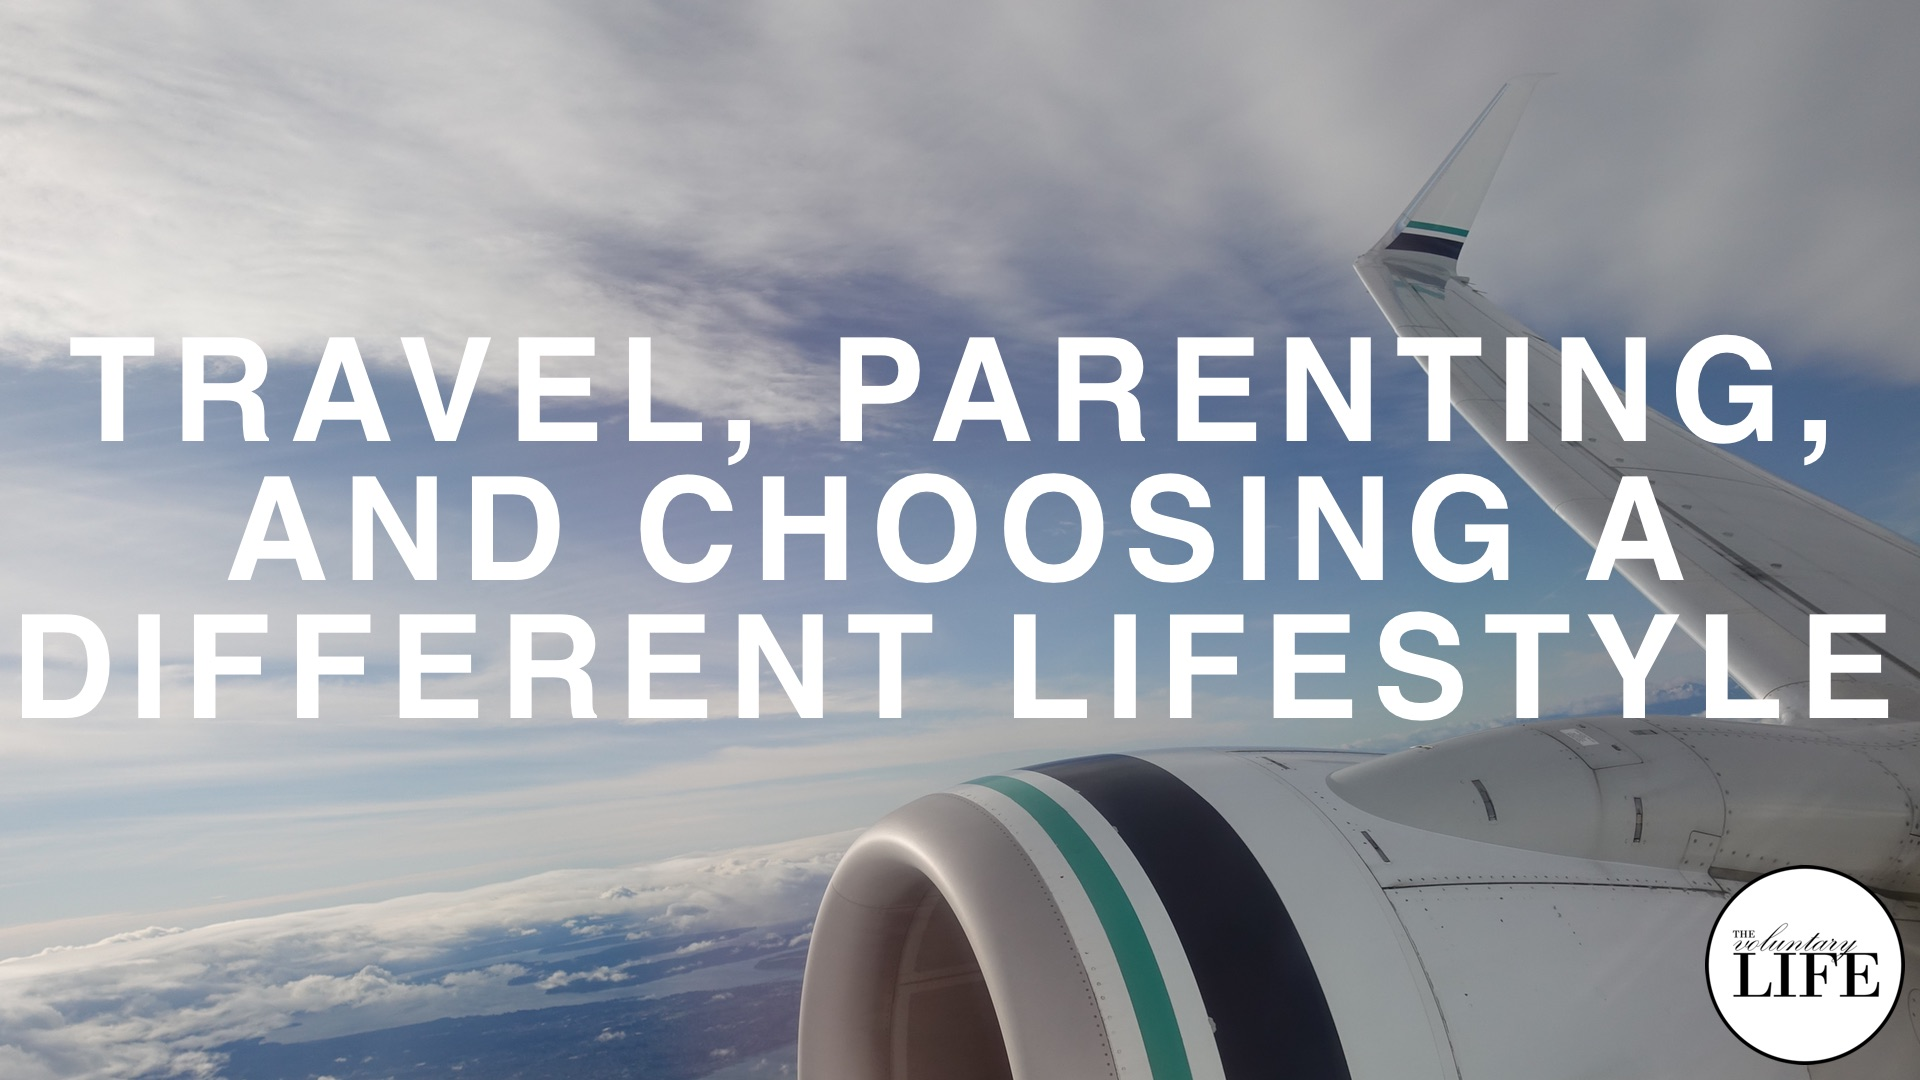 351 Travel, Parenting, And The Challenges Of Choosing A Different Lifestyle